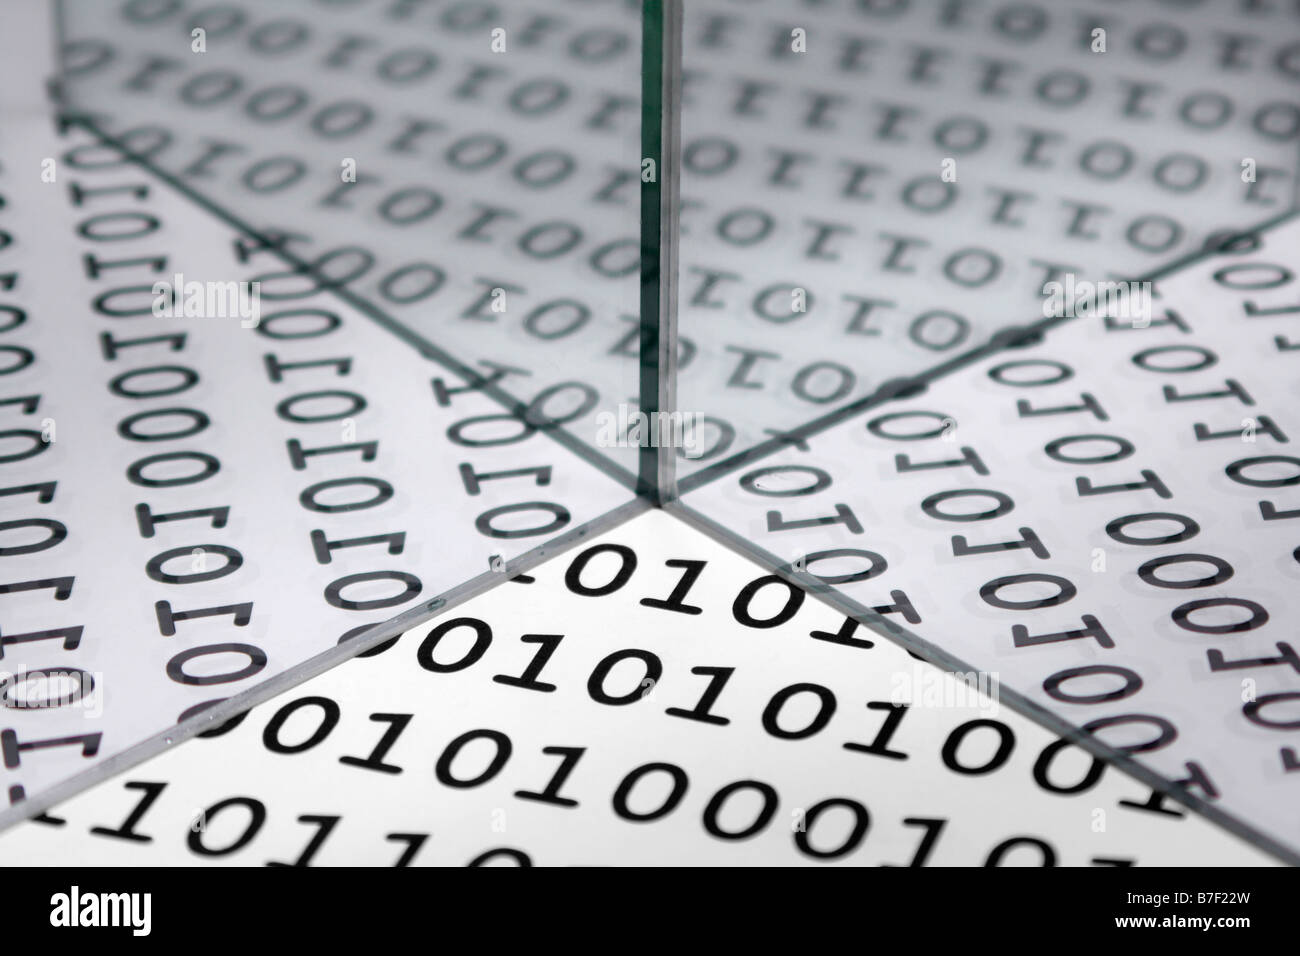 Binary background reflected - Stock Image